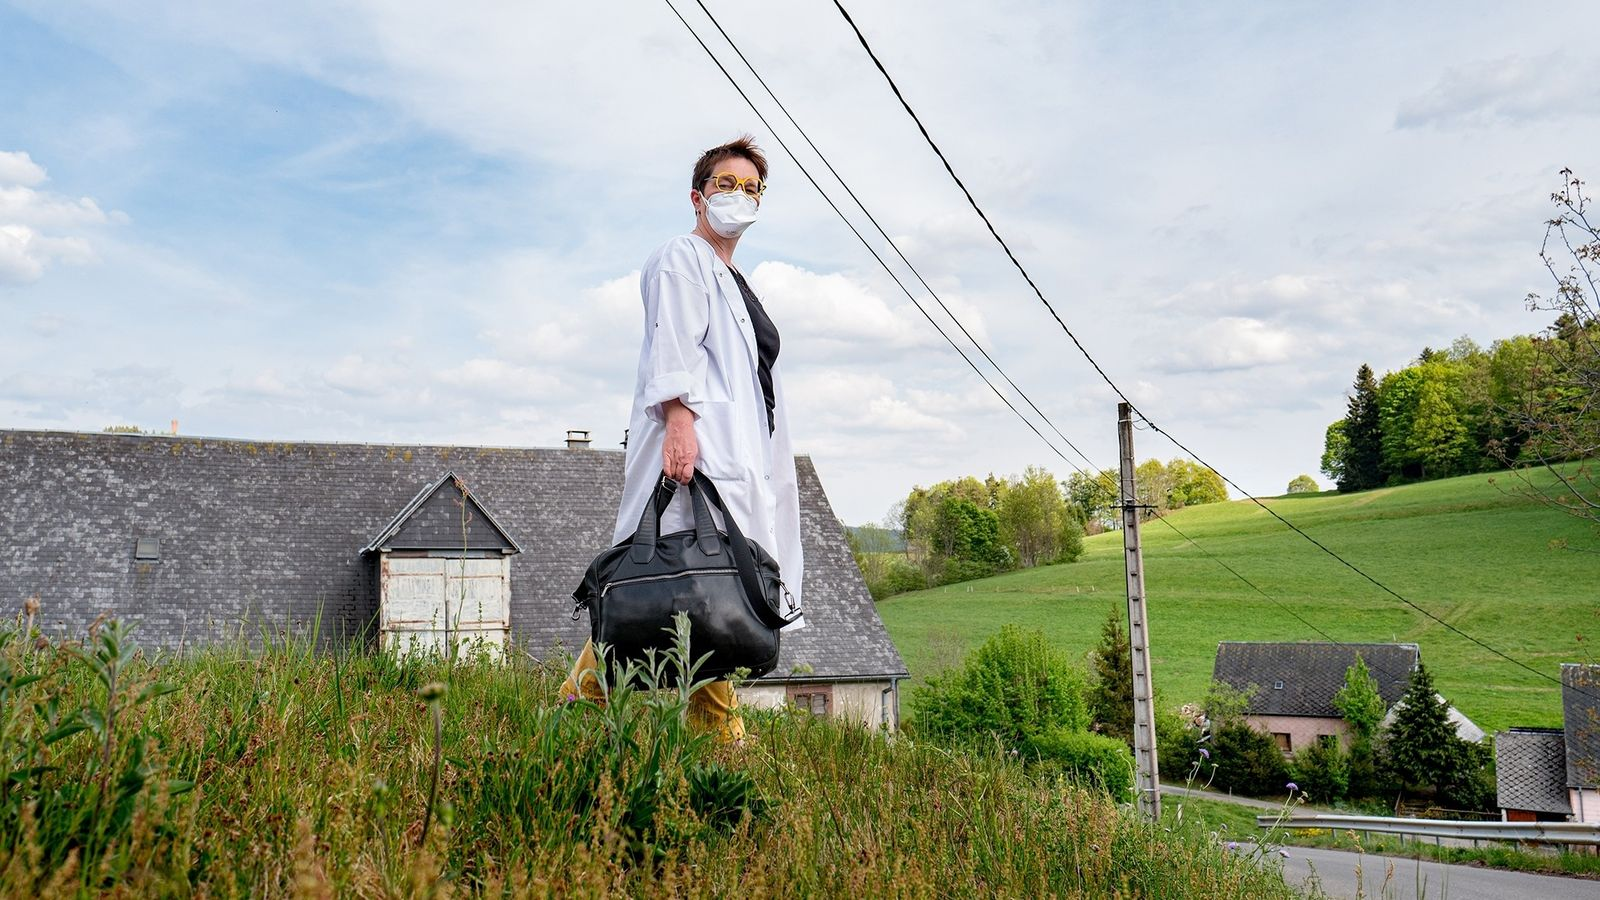 Dr. Dominique Sphilmann, a doctor in the remote mountainous region of Haute-Alsace, France, is the first ...